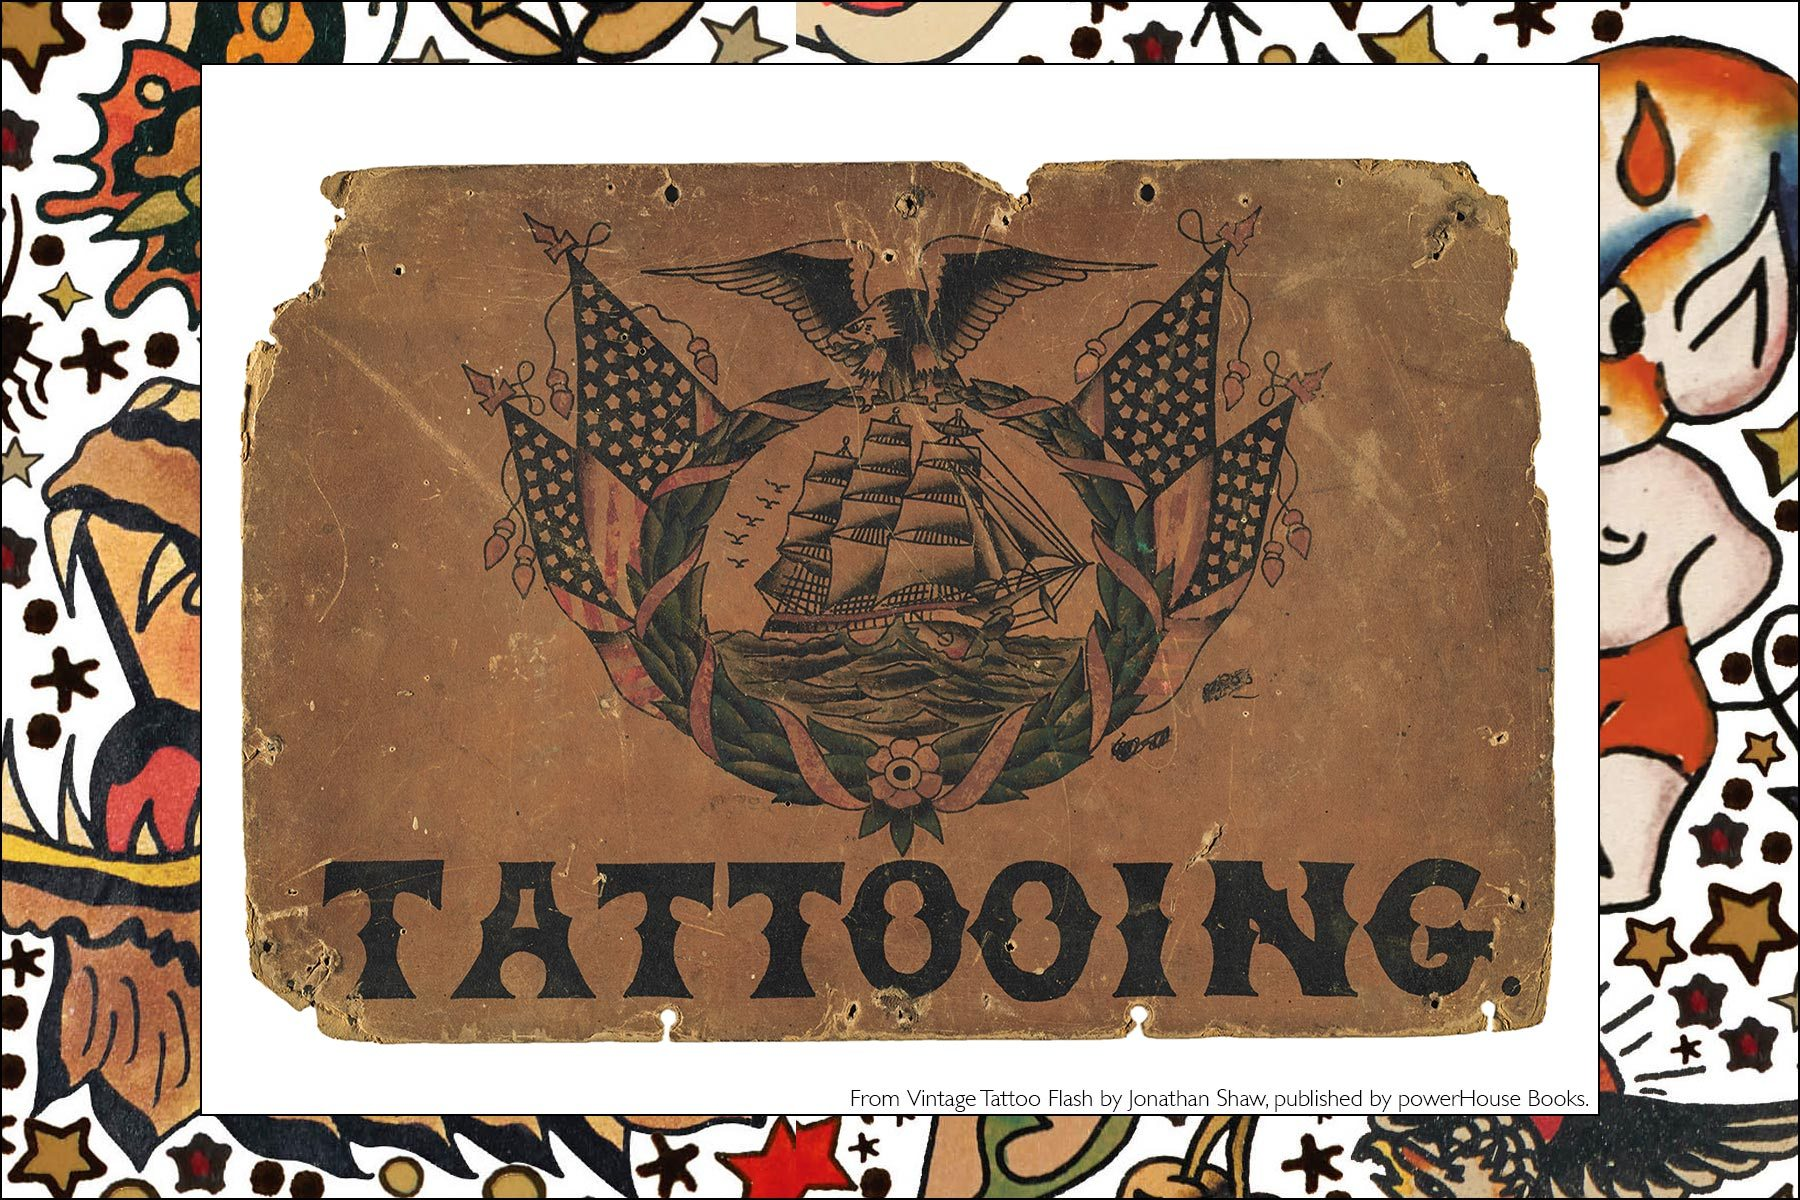 Vintage tattoo flash from the newly released publication by Powerhouse Books, Vintage Tattoo Flash by Jonathan Shaw. Ponyboy magazine NY.